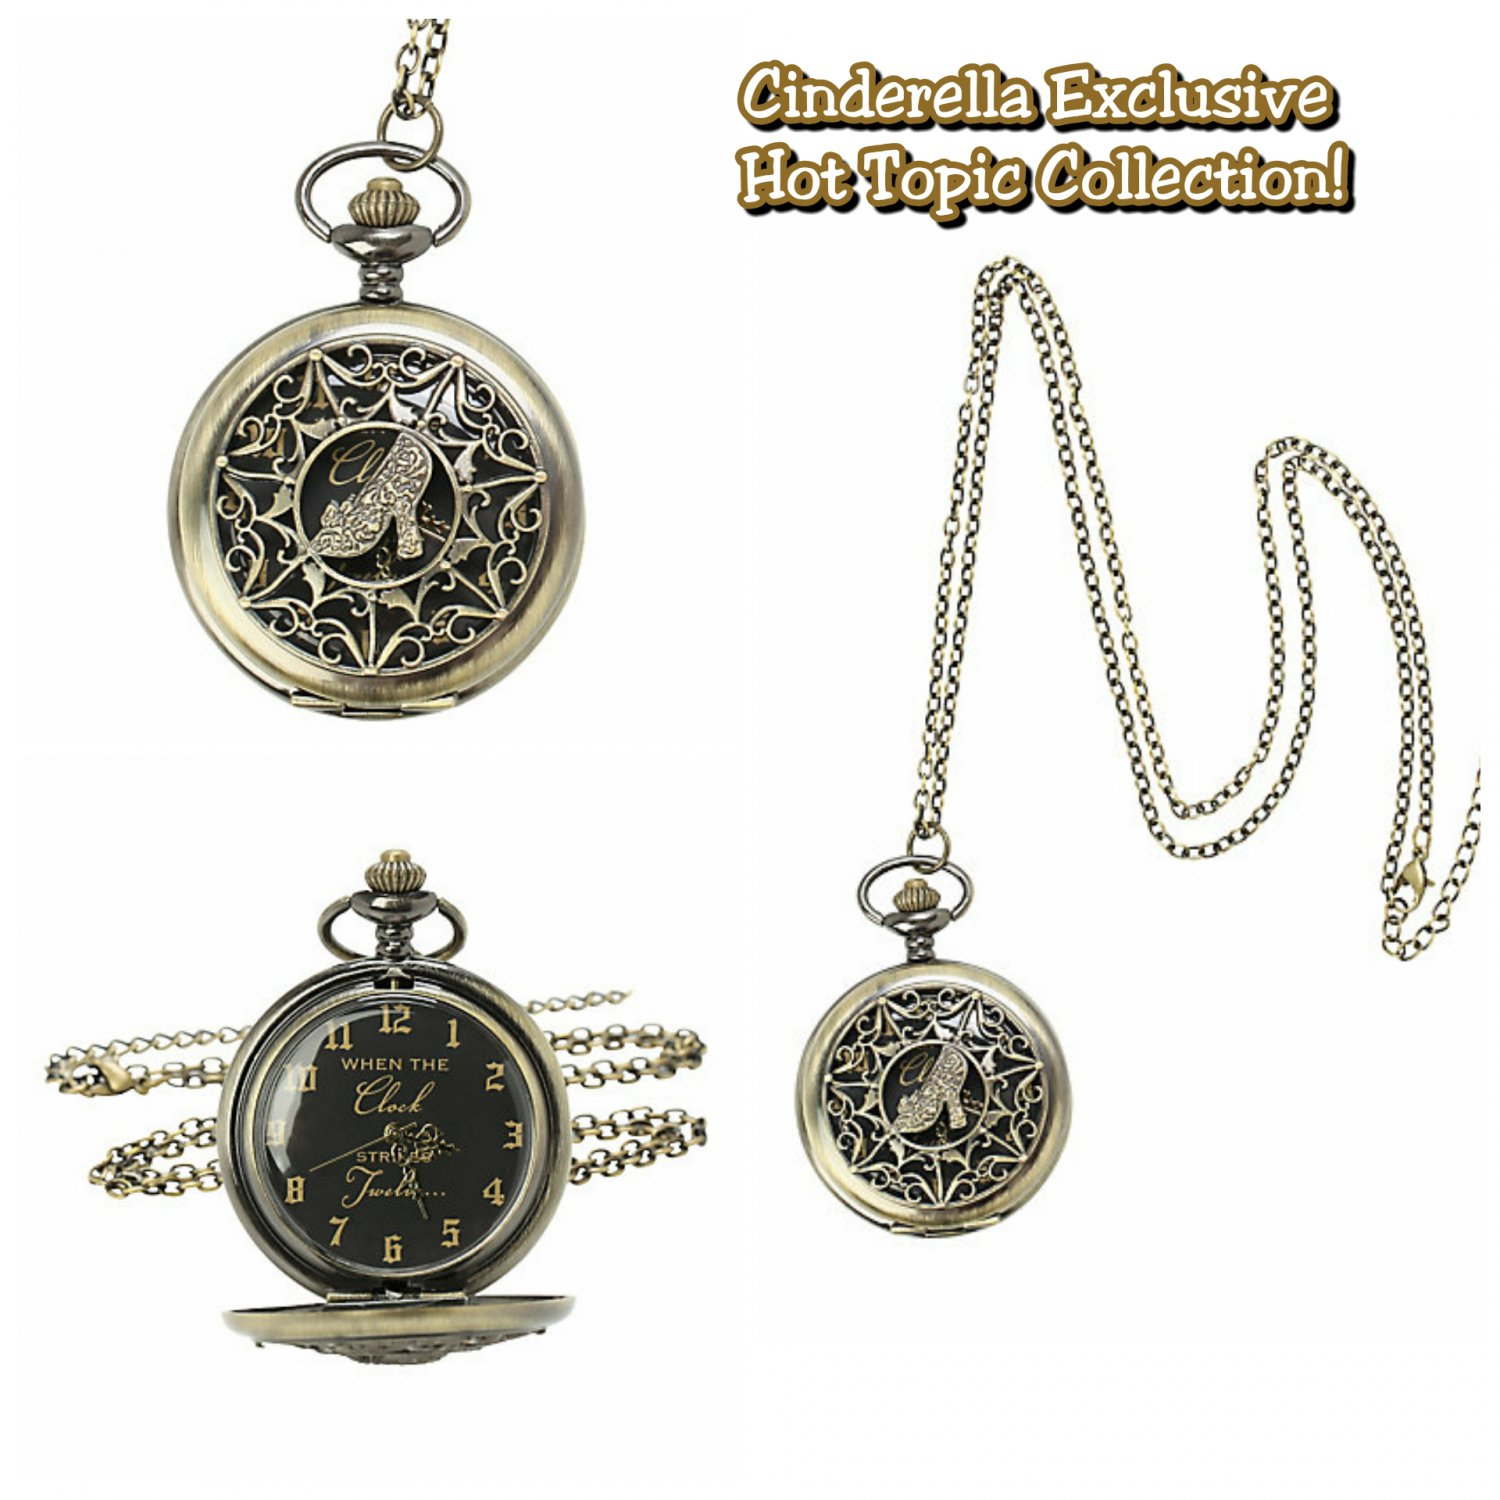 Disney Cinderella Exclusive Hot Topic Collection Pocket Watch Pendant Necklace by HighIntenCity